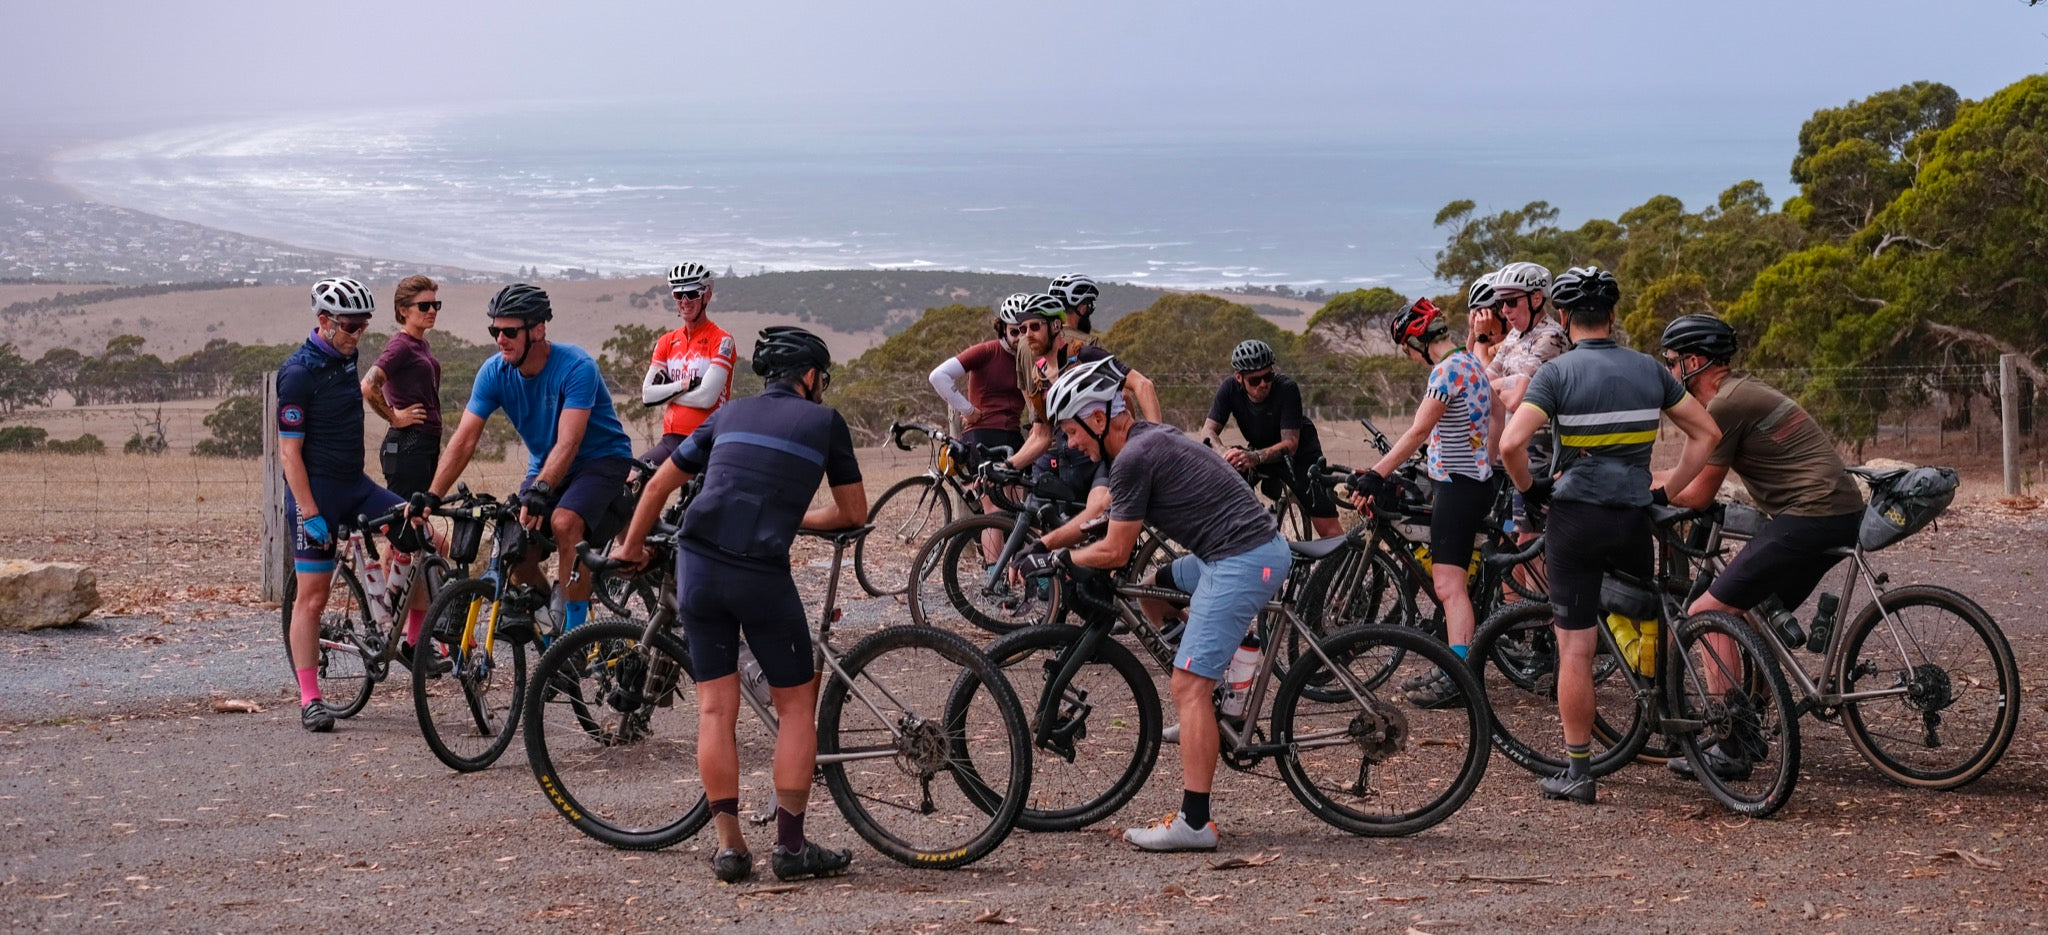 Cycling Group Ride Adventure